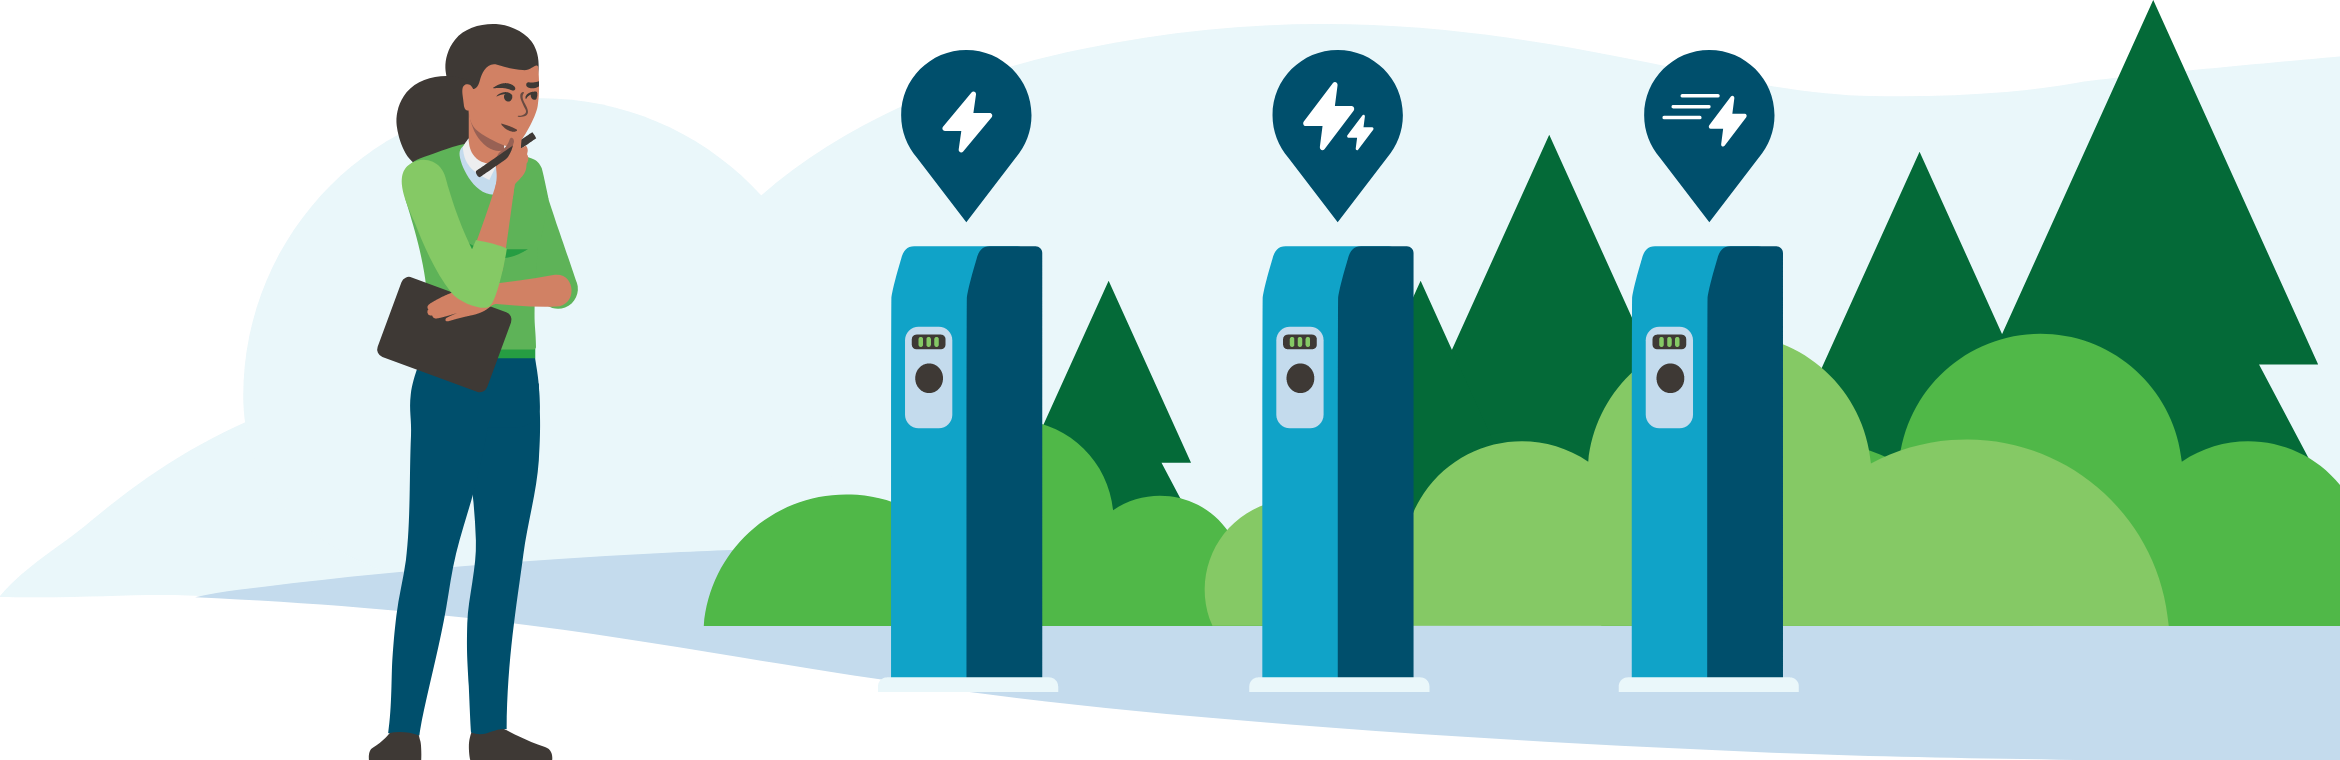 Choosing the right EV charger